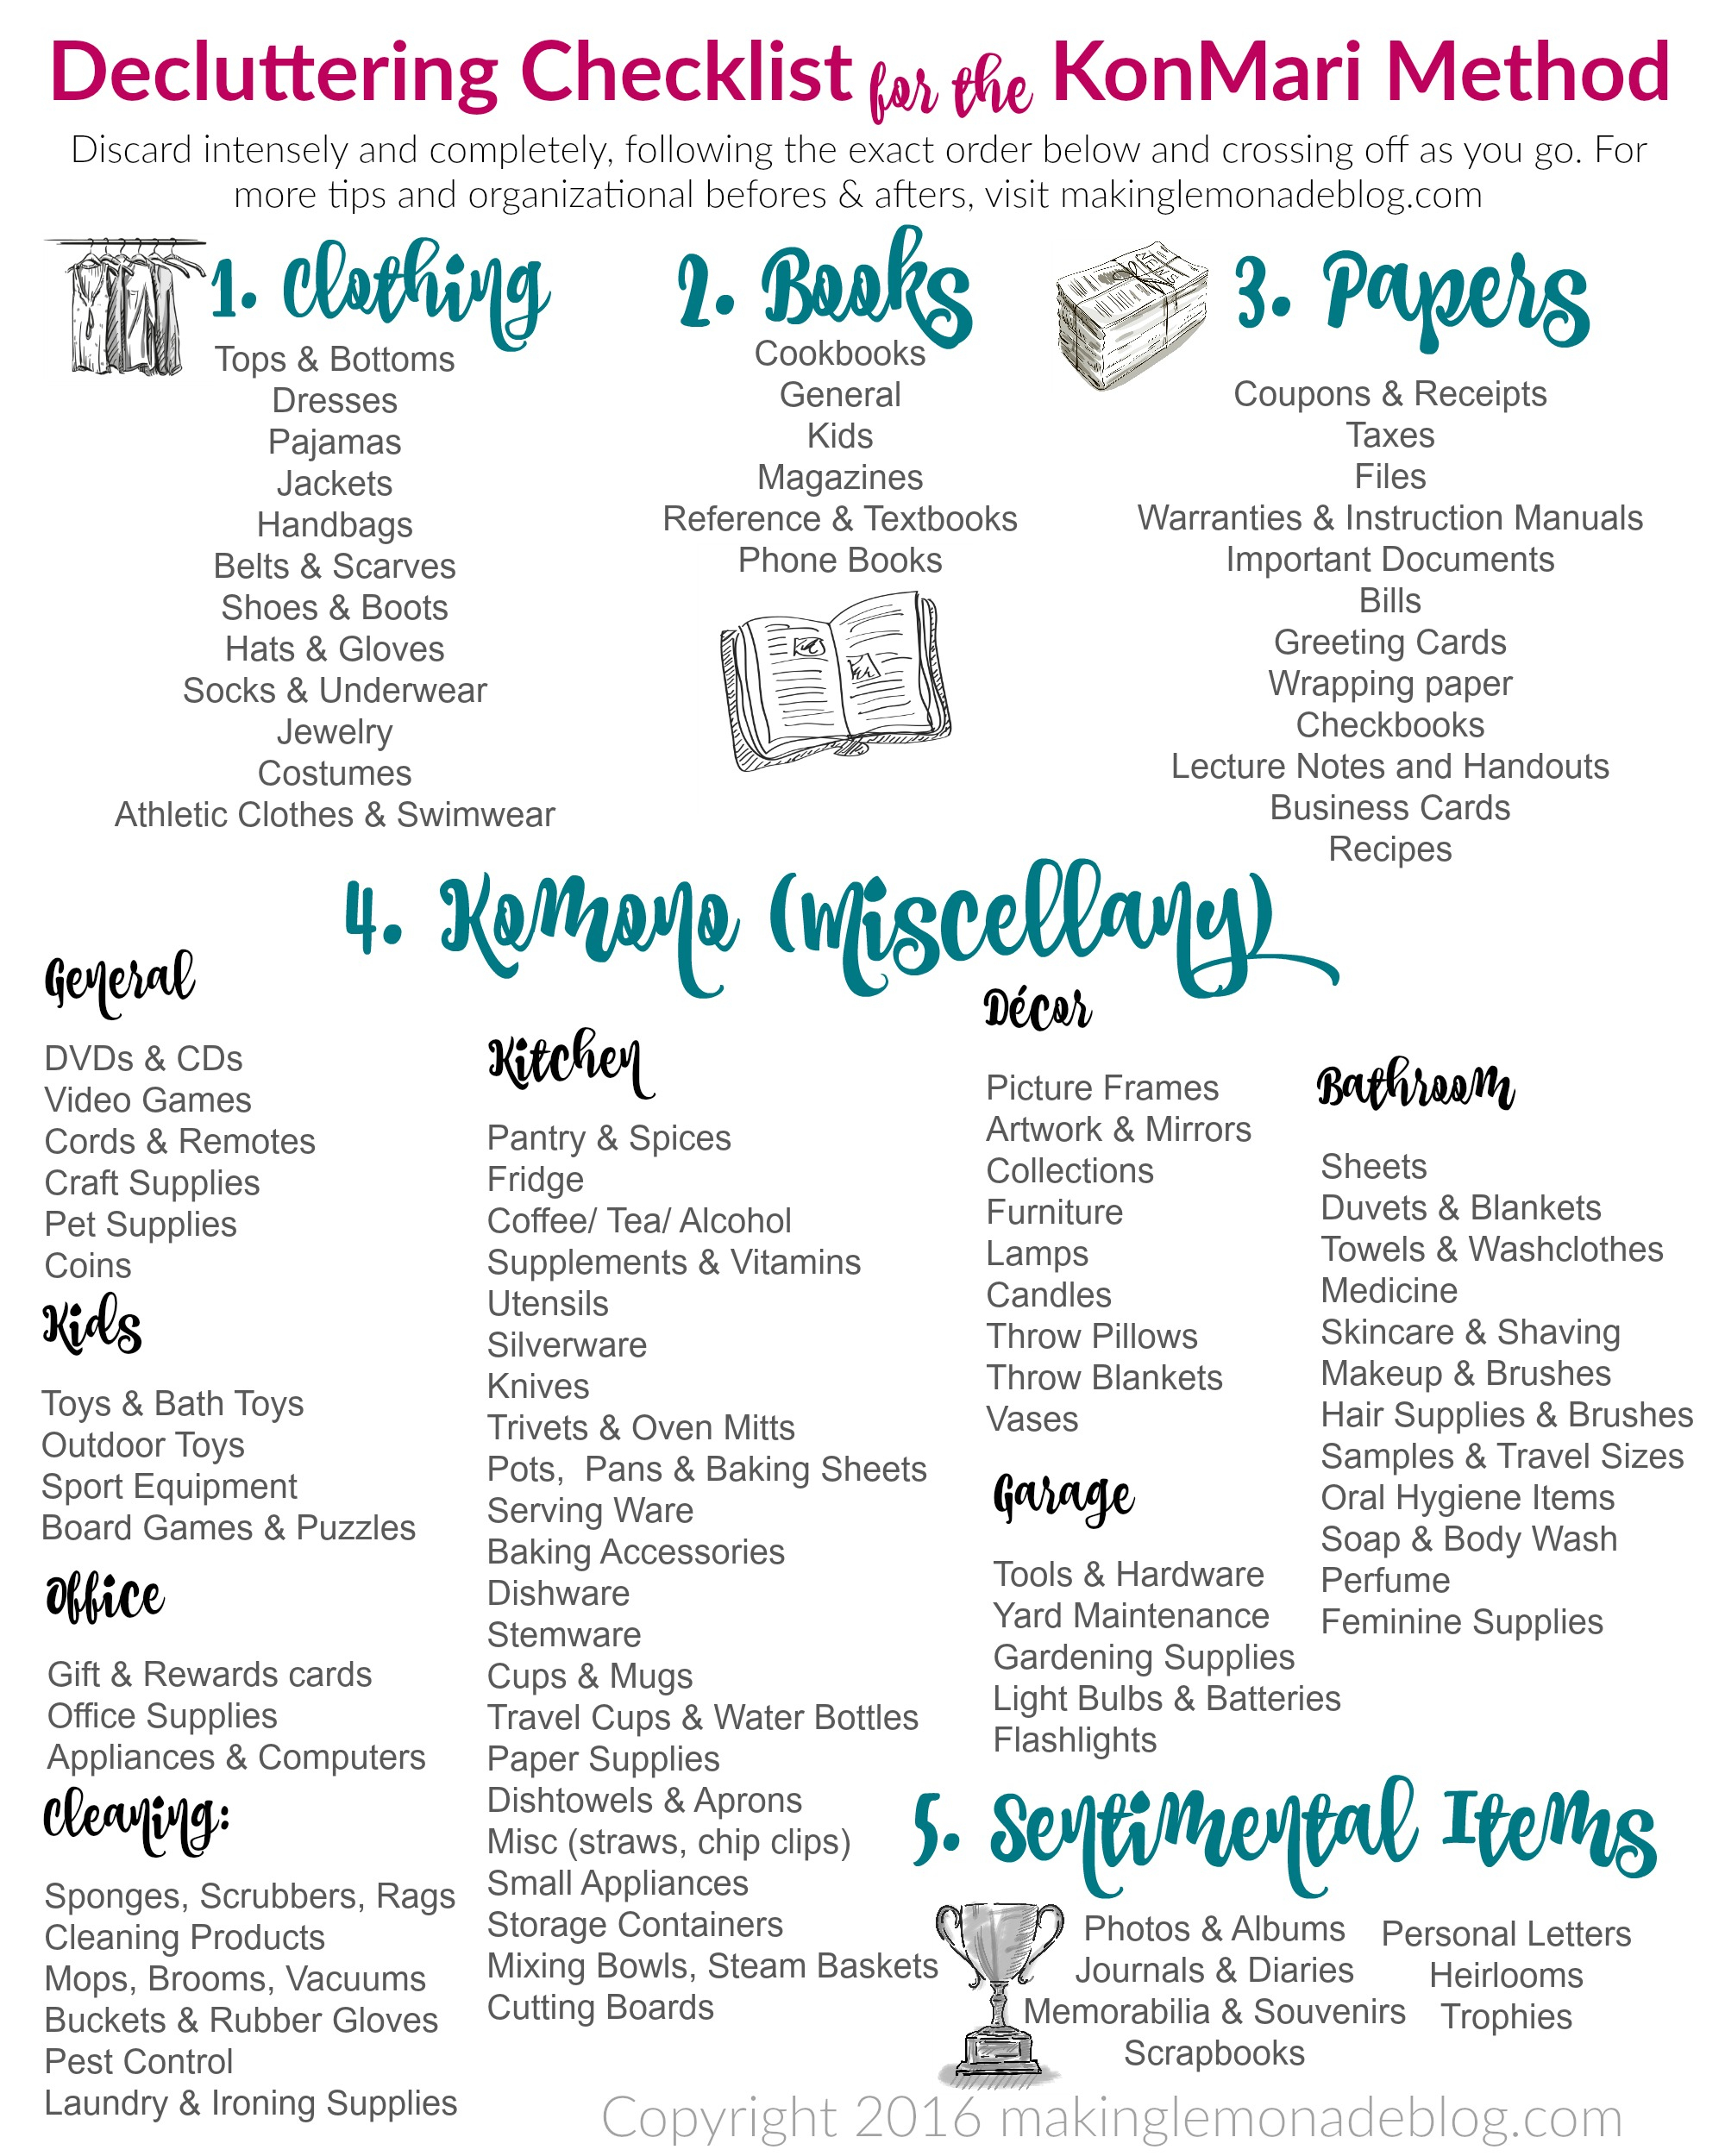 The Ultimate Free Printable Decluttering Checklist For Konmari Success! - Free Printable Textbooks